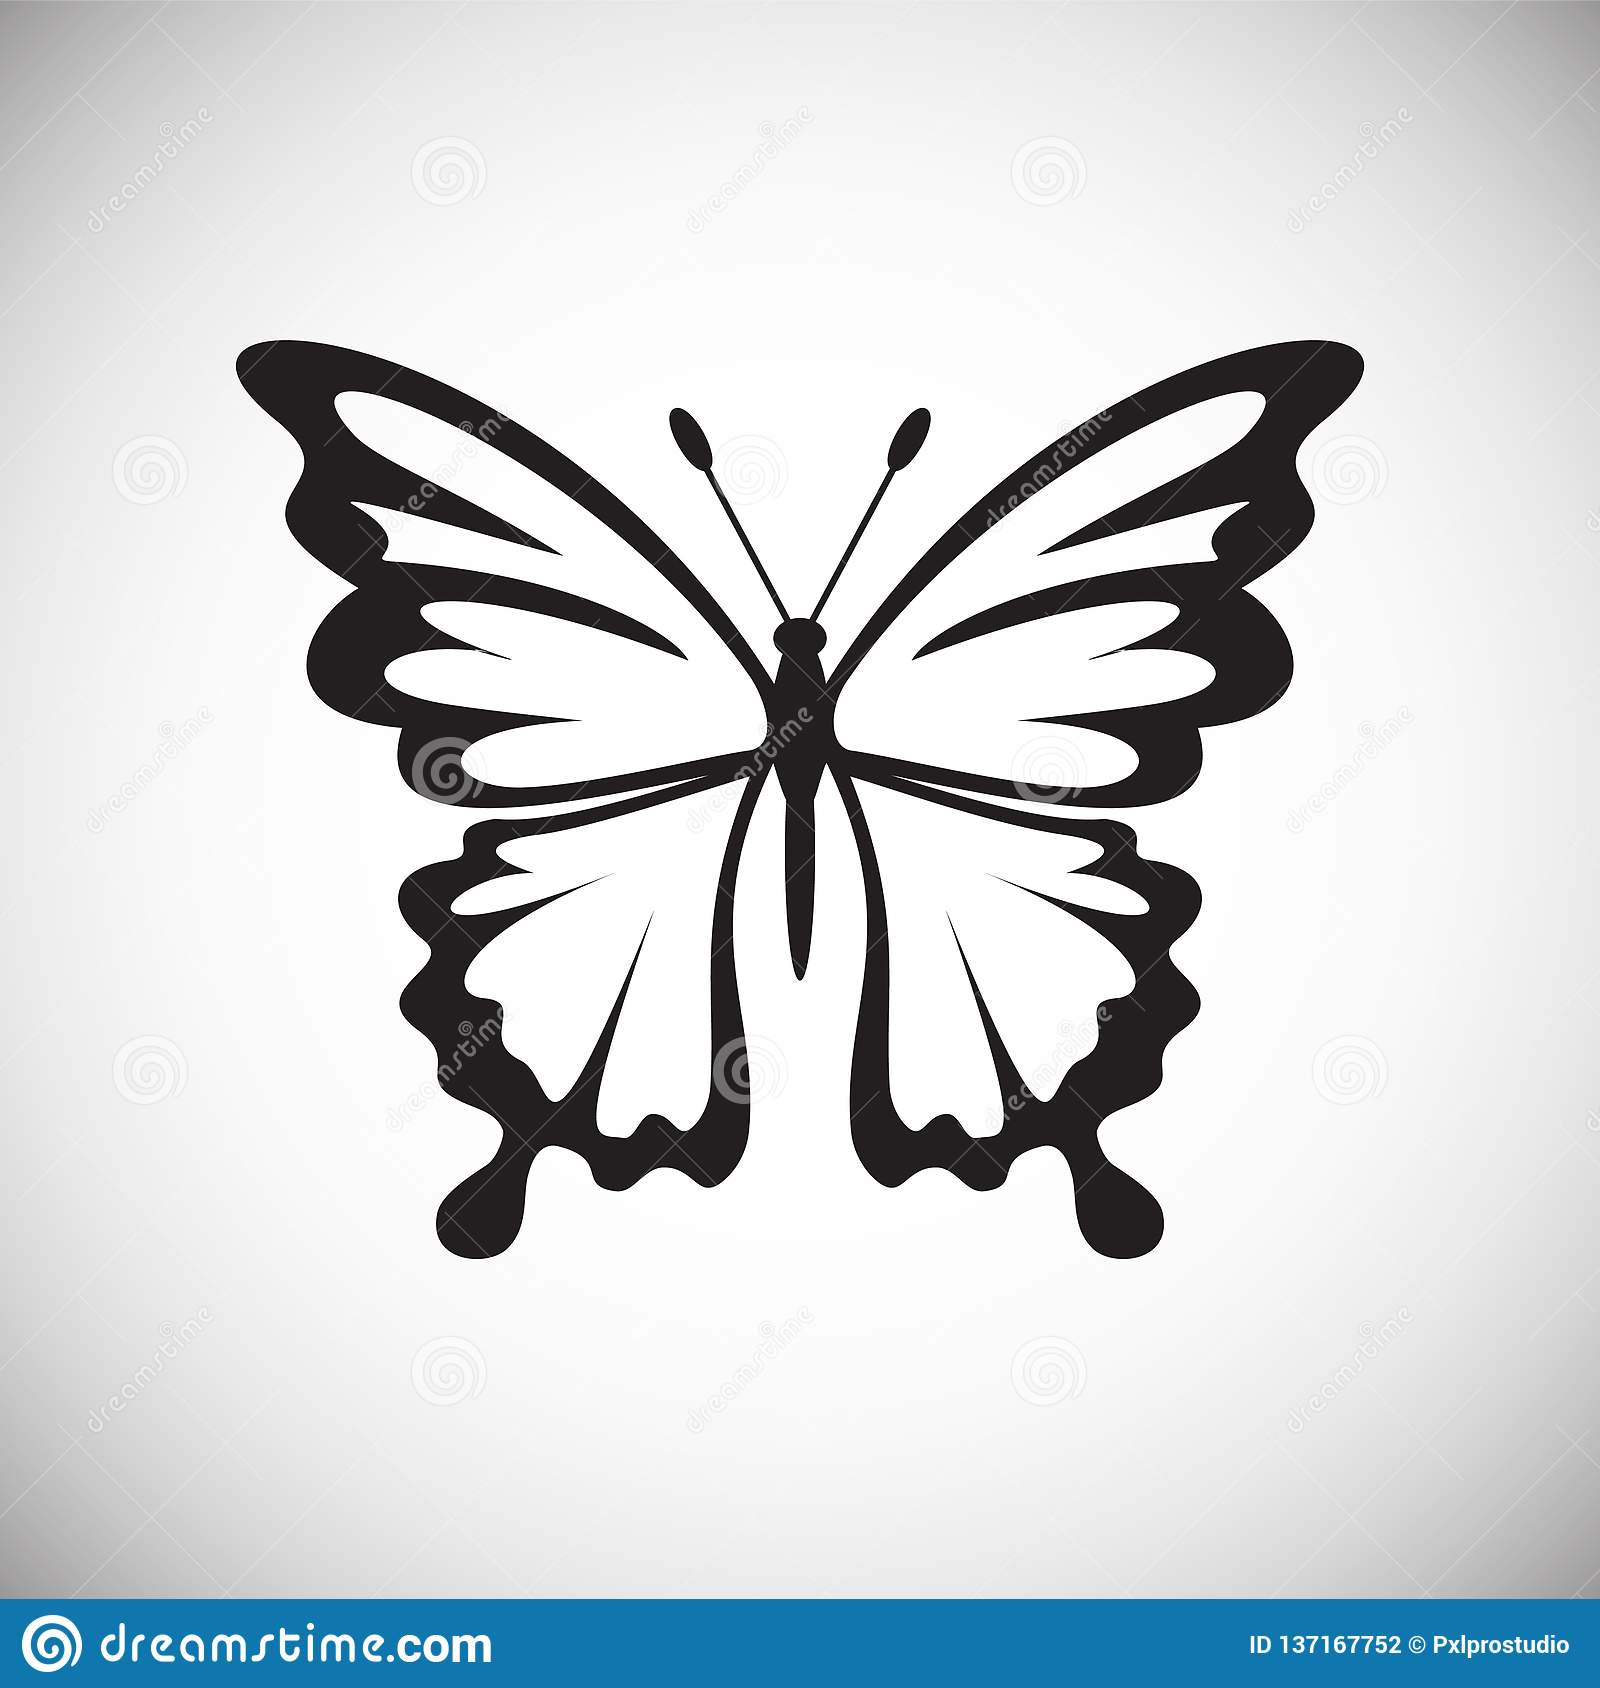 butterfly icon on white background for graphic and web design modern simple vector sign internet concept trendy symbol for stock vector illustration of black fauna 137167752 https www dreamstime com butterfly icon white background graphic web design modern simple vector sign internet concept trendy symbol image137167752